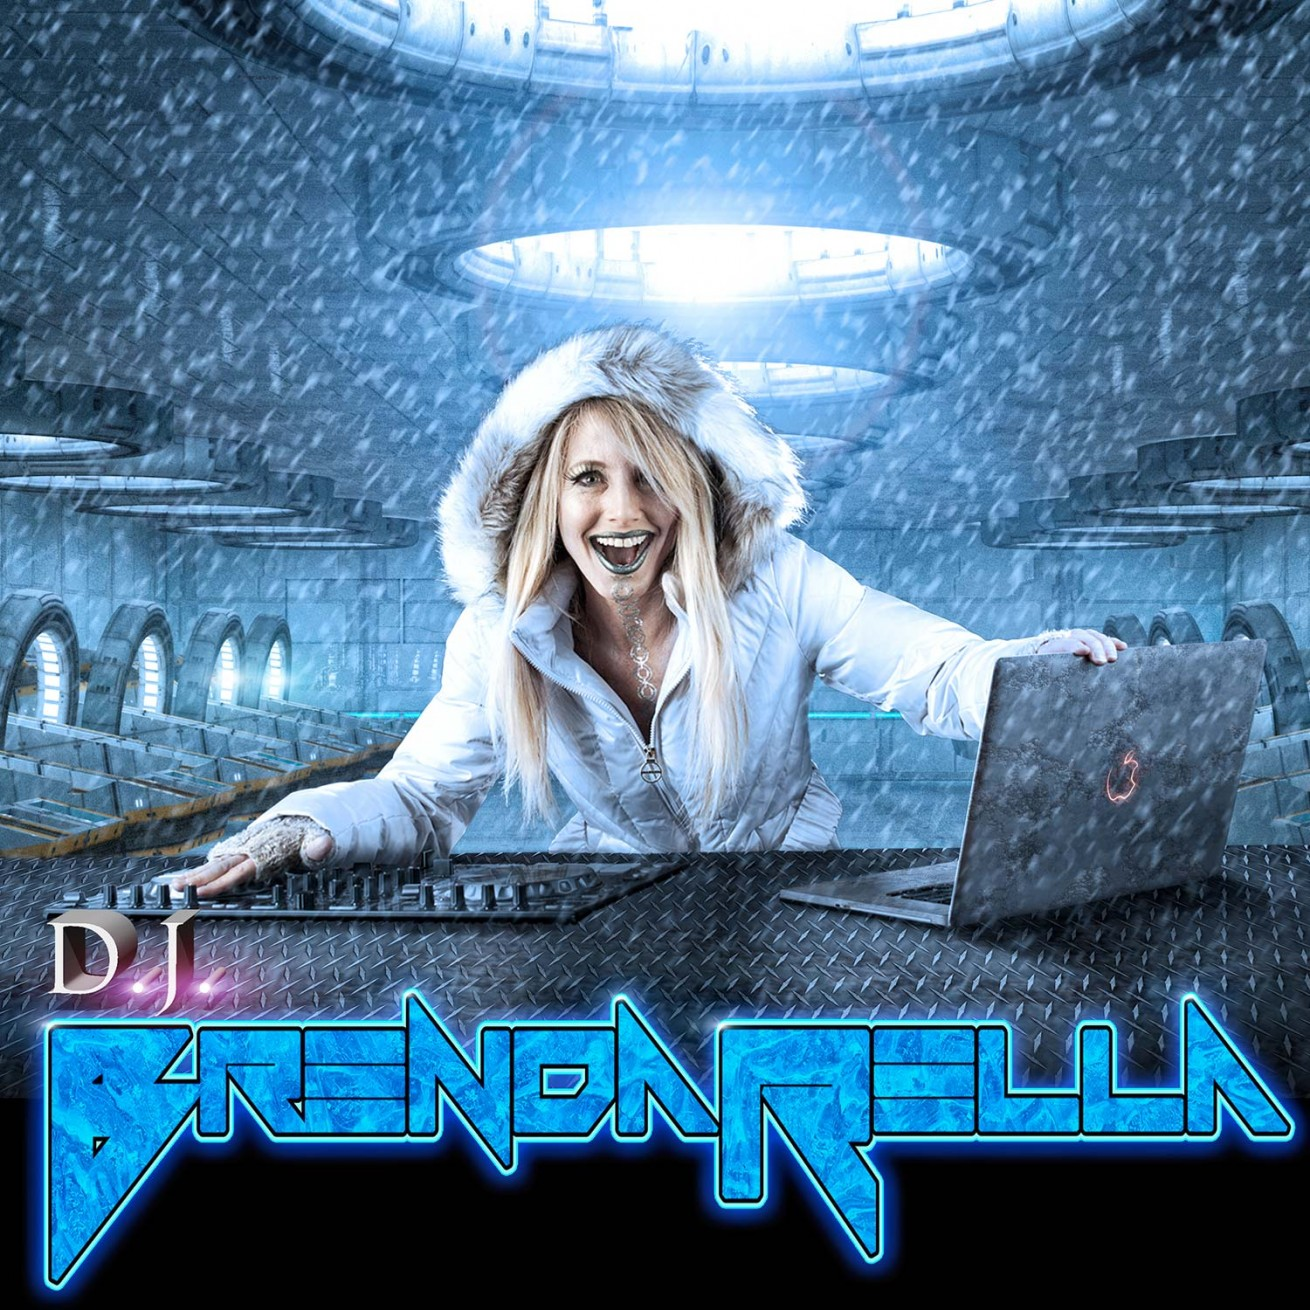 BrendaRella CD Cover